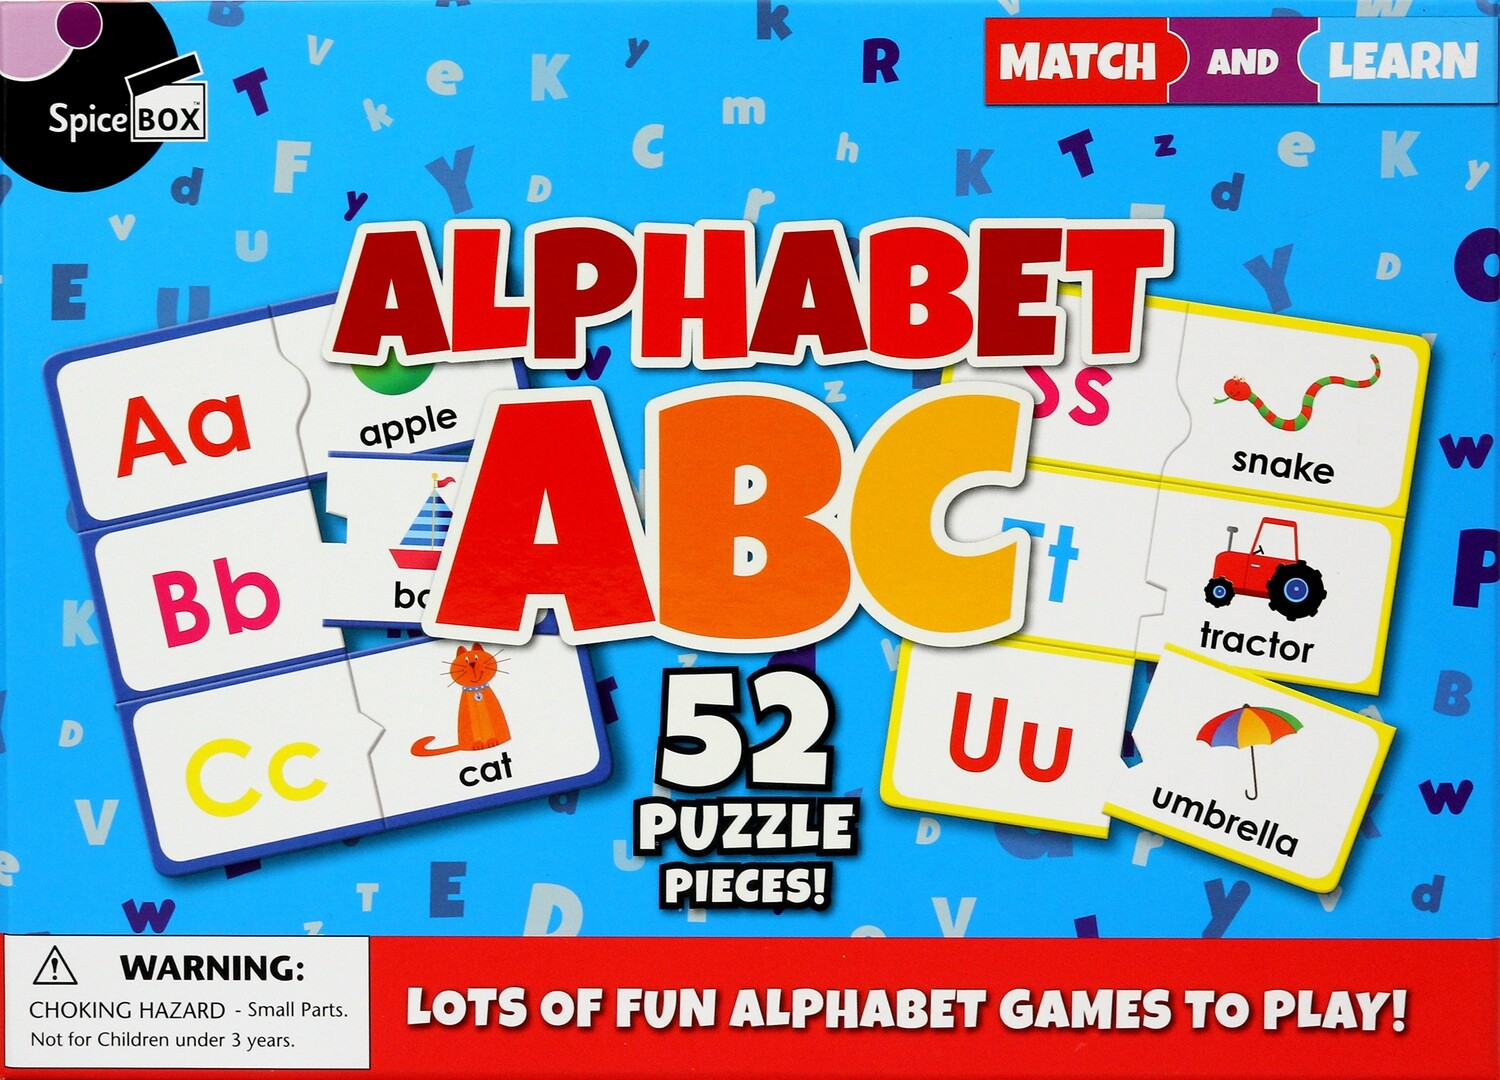 Match and Learn: Alphabet ABC Puzzles